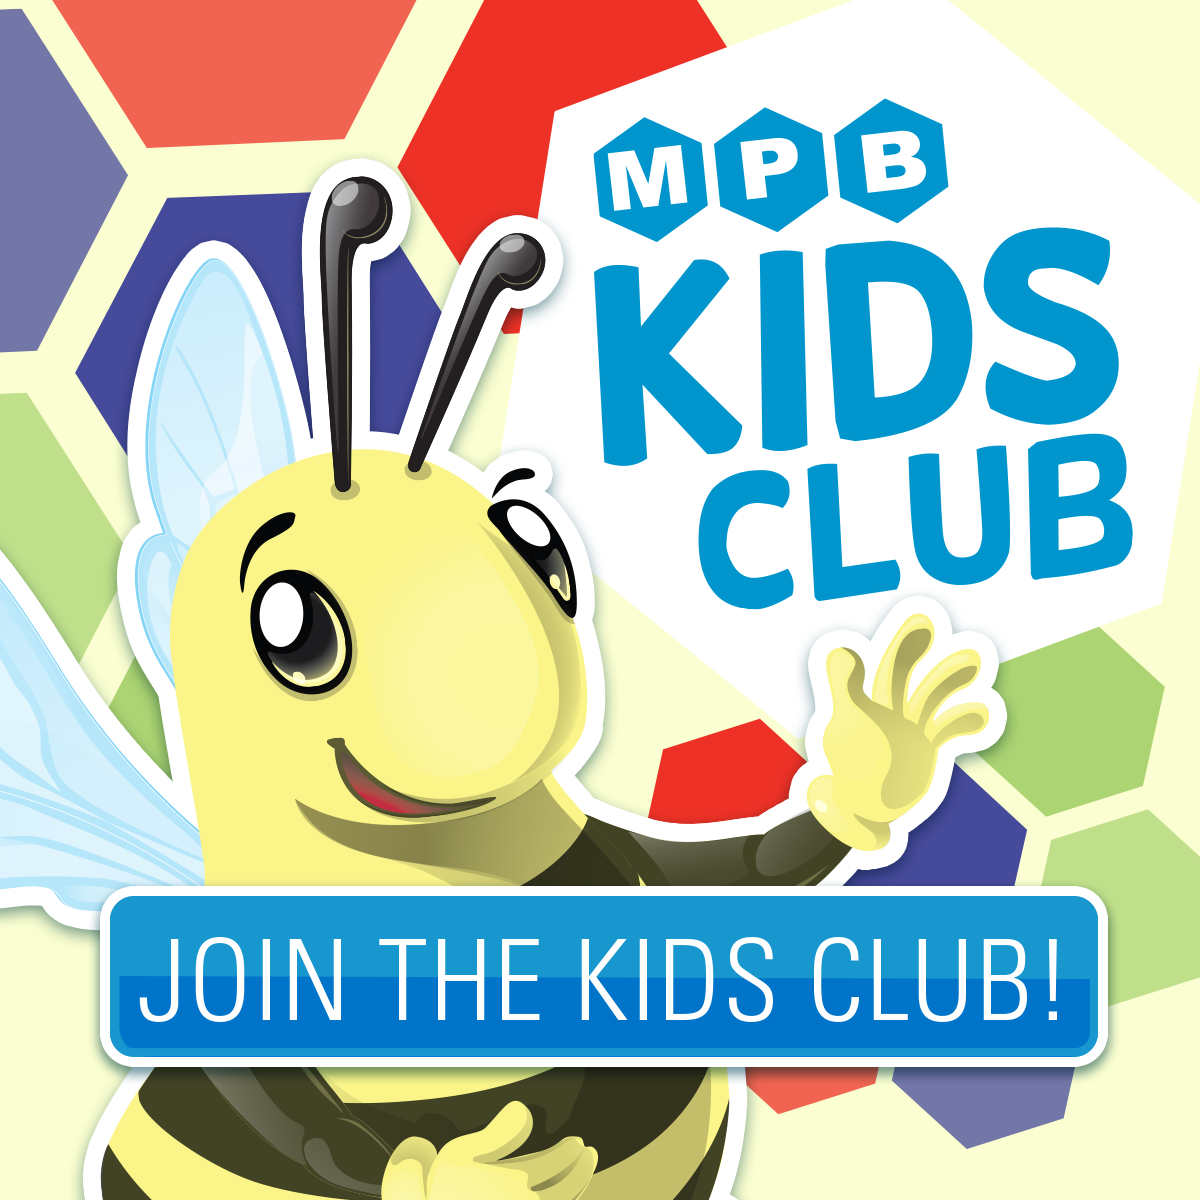 Join the Kids Club!